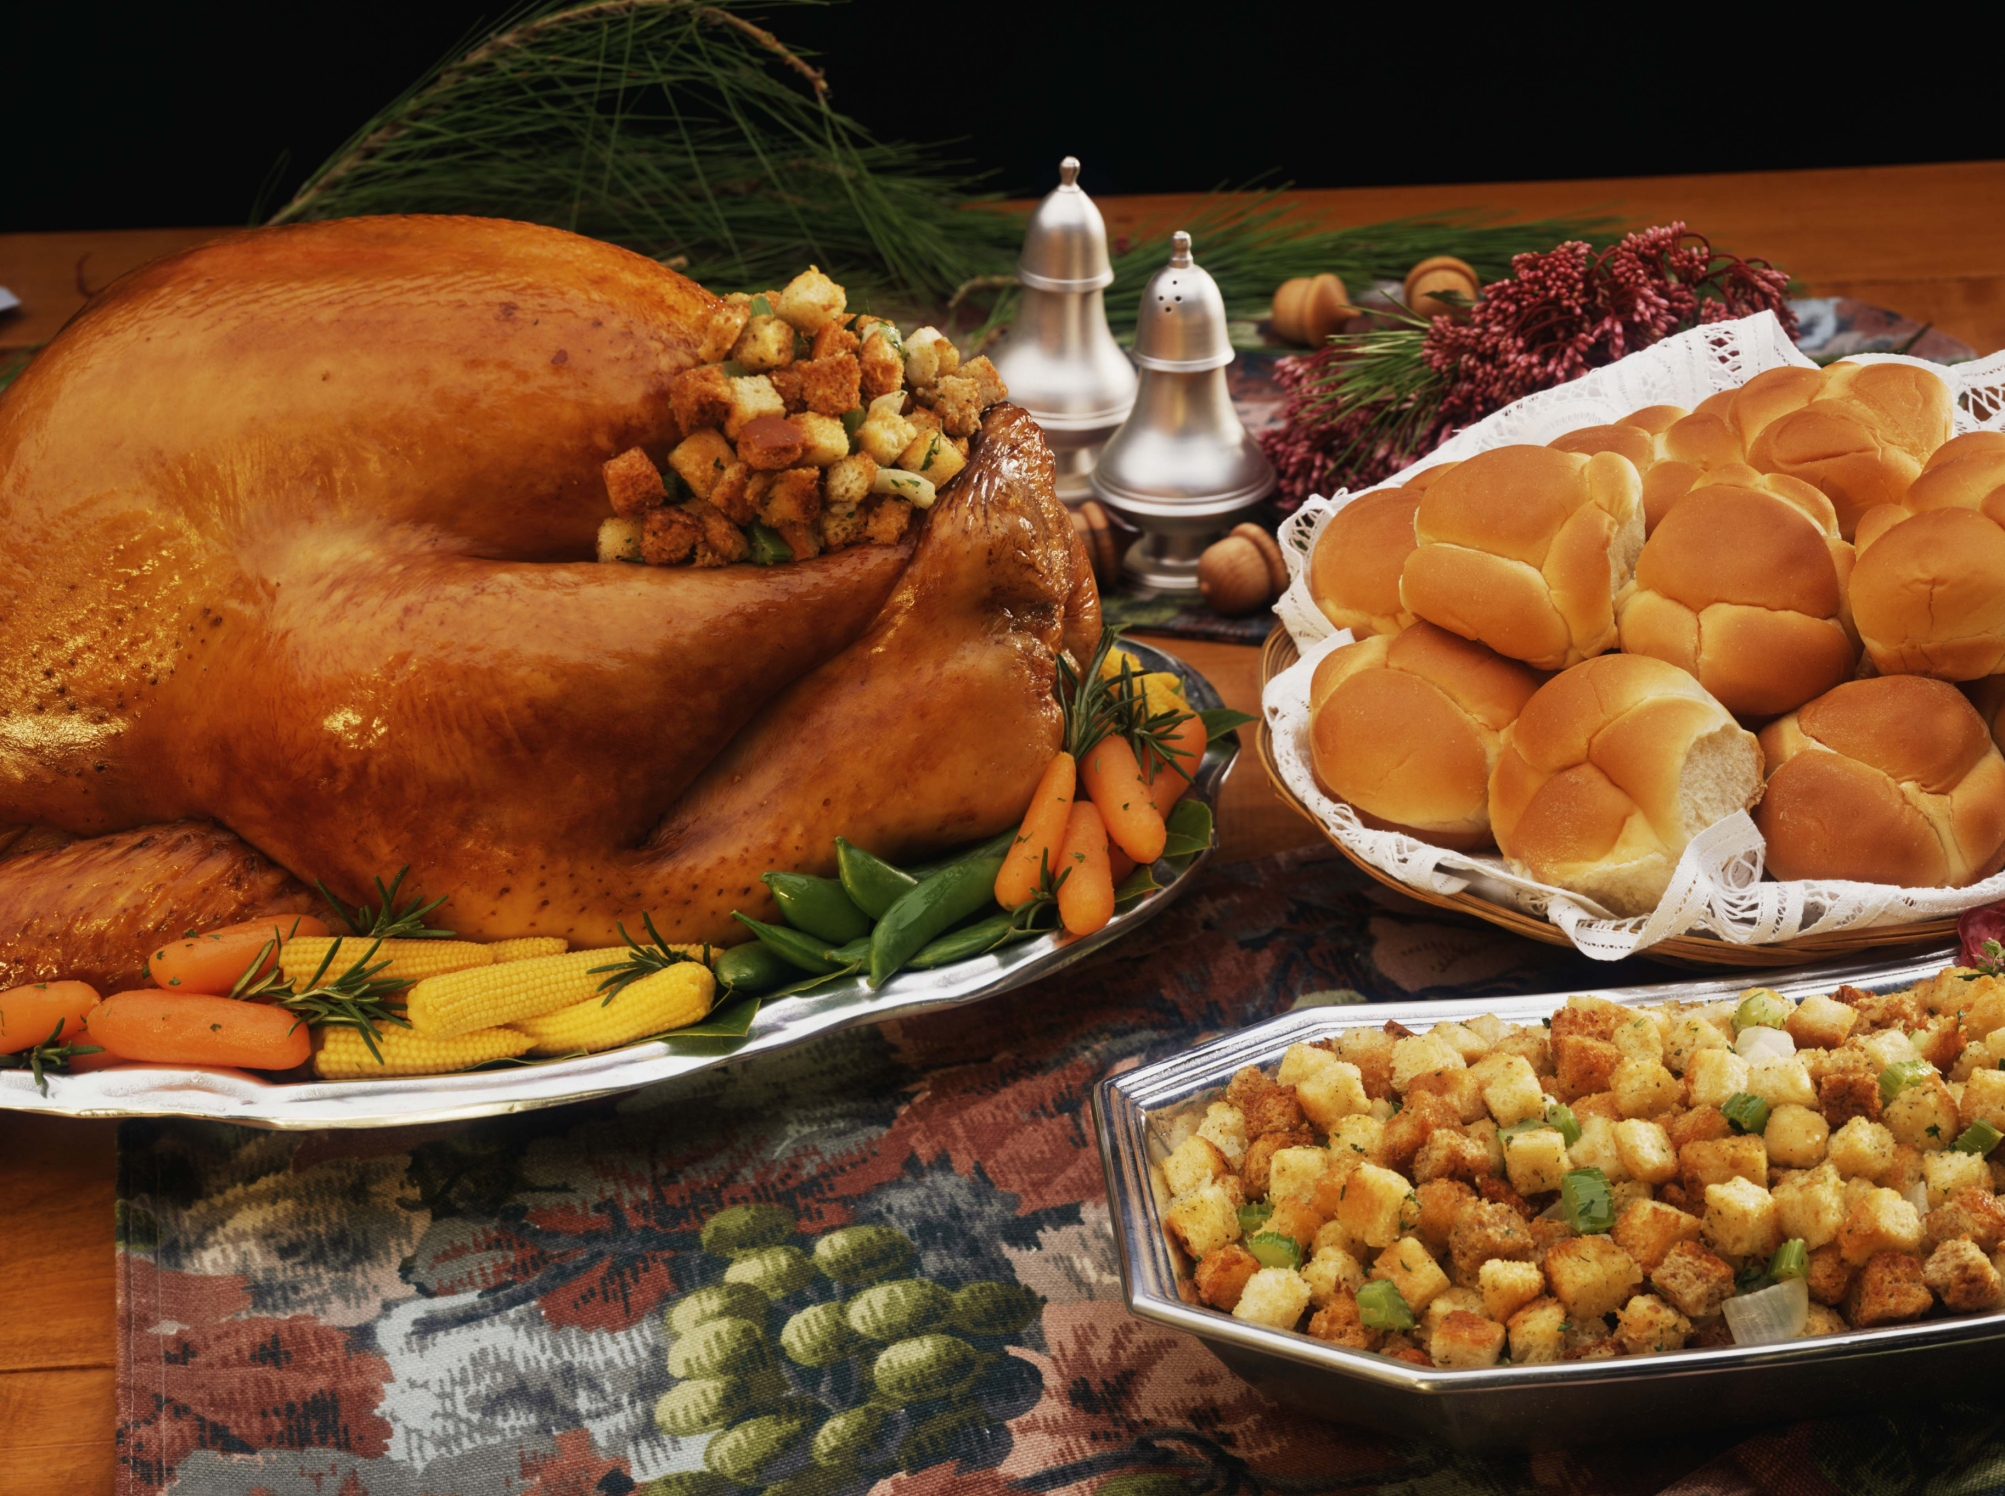 The turkey takes center stage in Thanksgiving dinner.